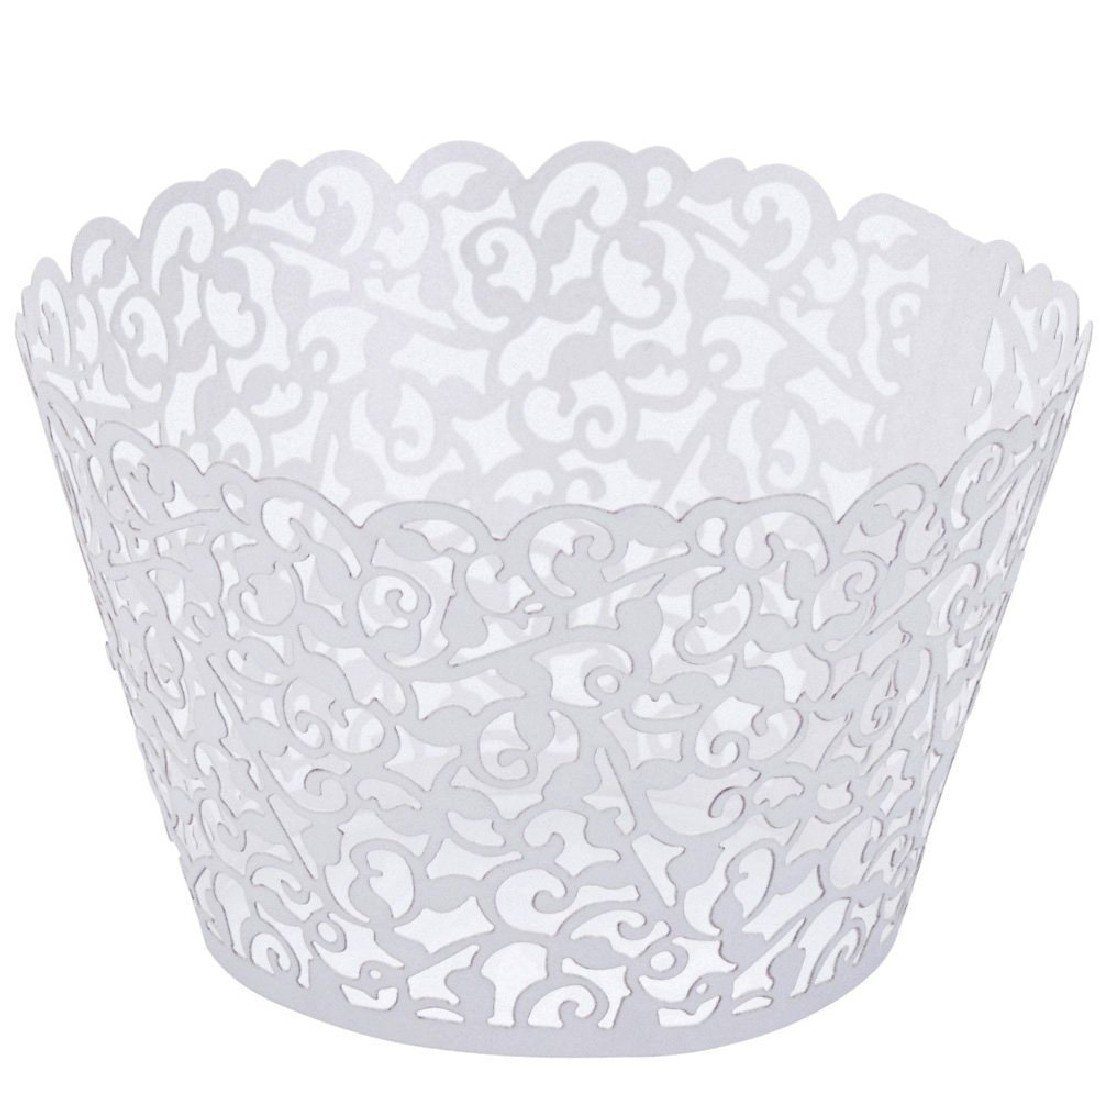 50pcs Pearly Paper Vine Lace Cup Cake Wrappers Cupcake Tower Cake Decoration Supplies White [Energy Class A] OKSTORE NWIDEKKFNK995